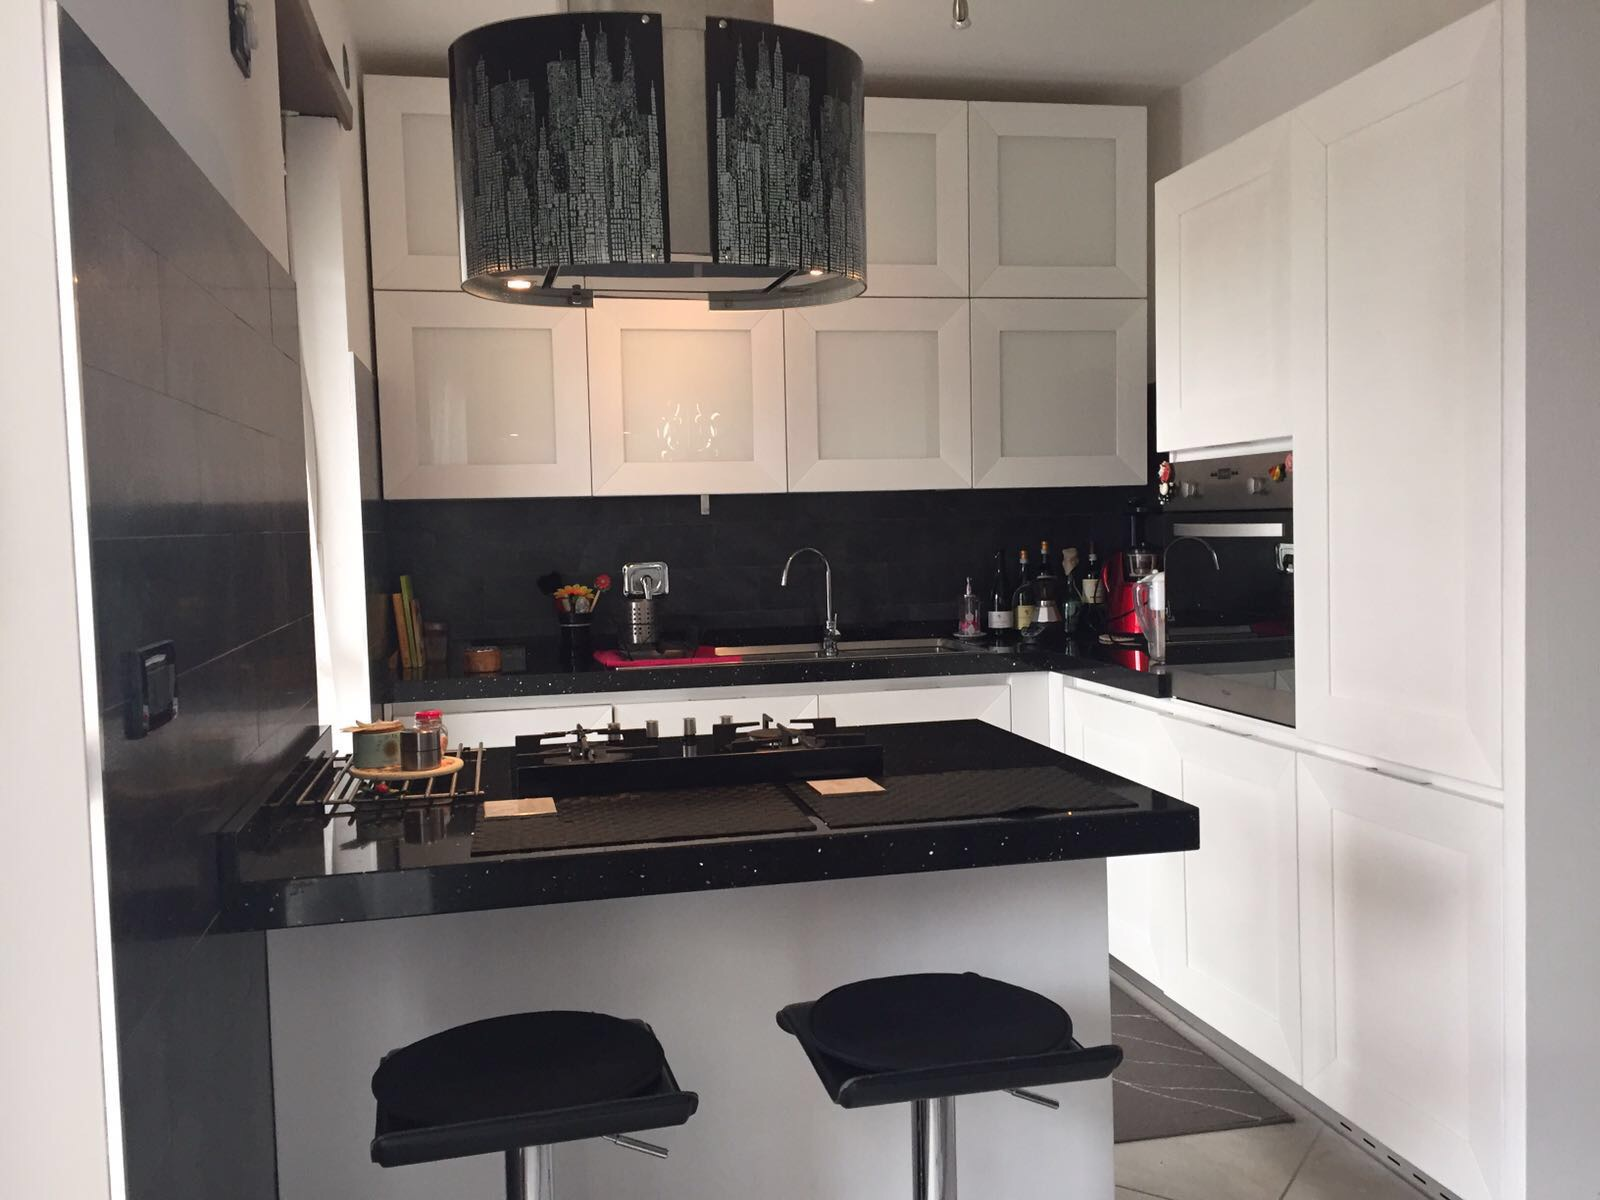 Cucina Open Space Moderna vacation rentals, homes, experiences & places - airbnb